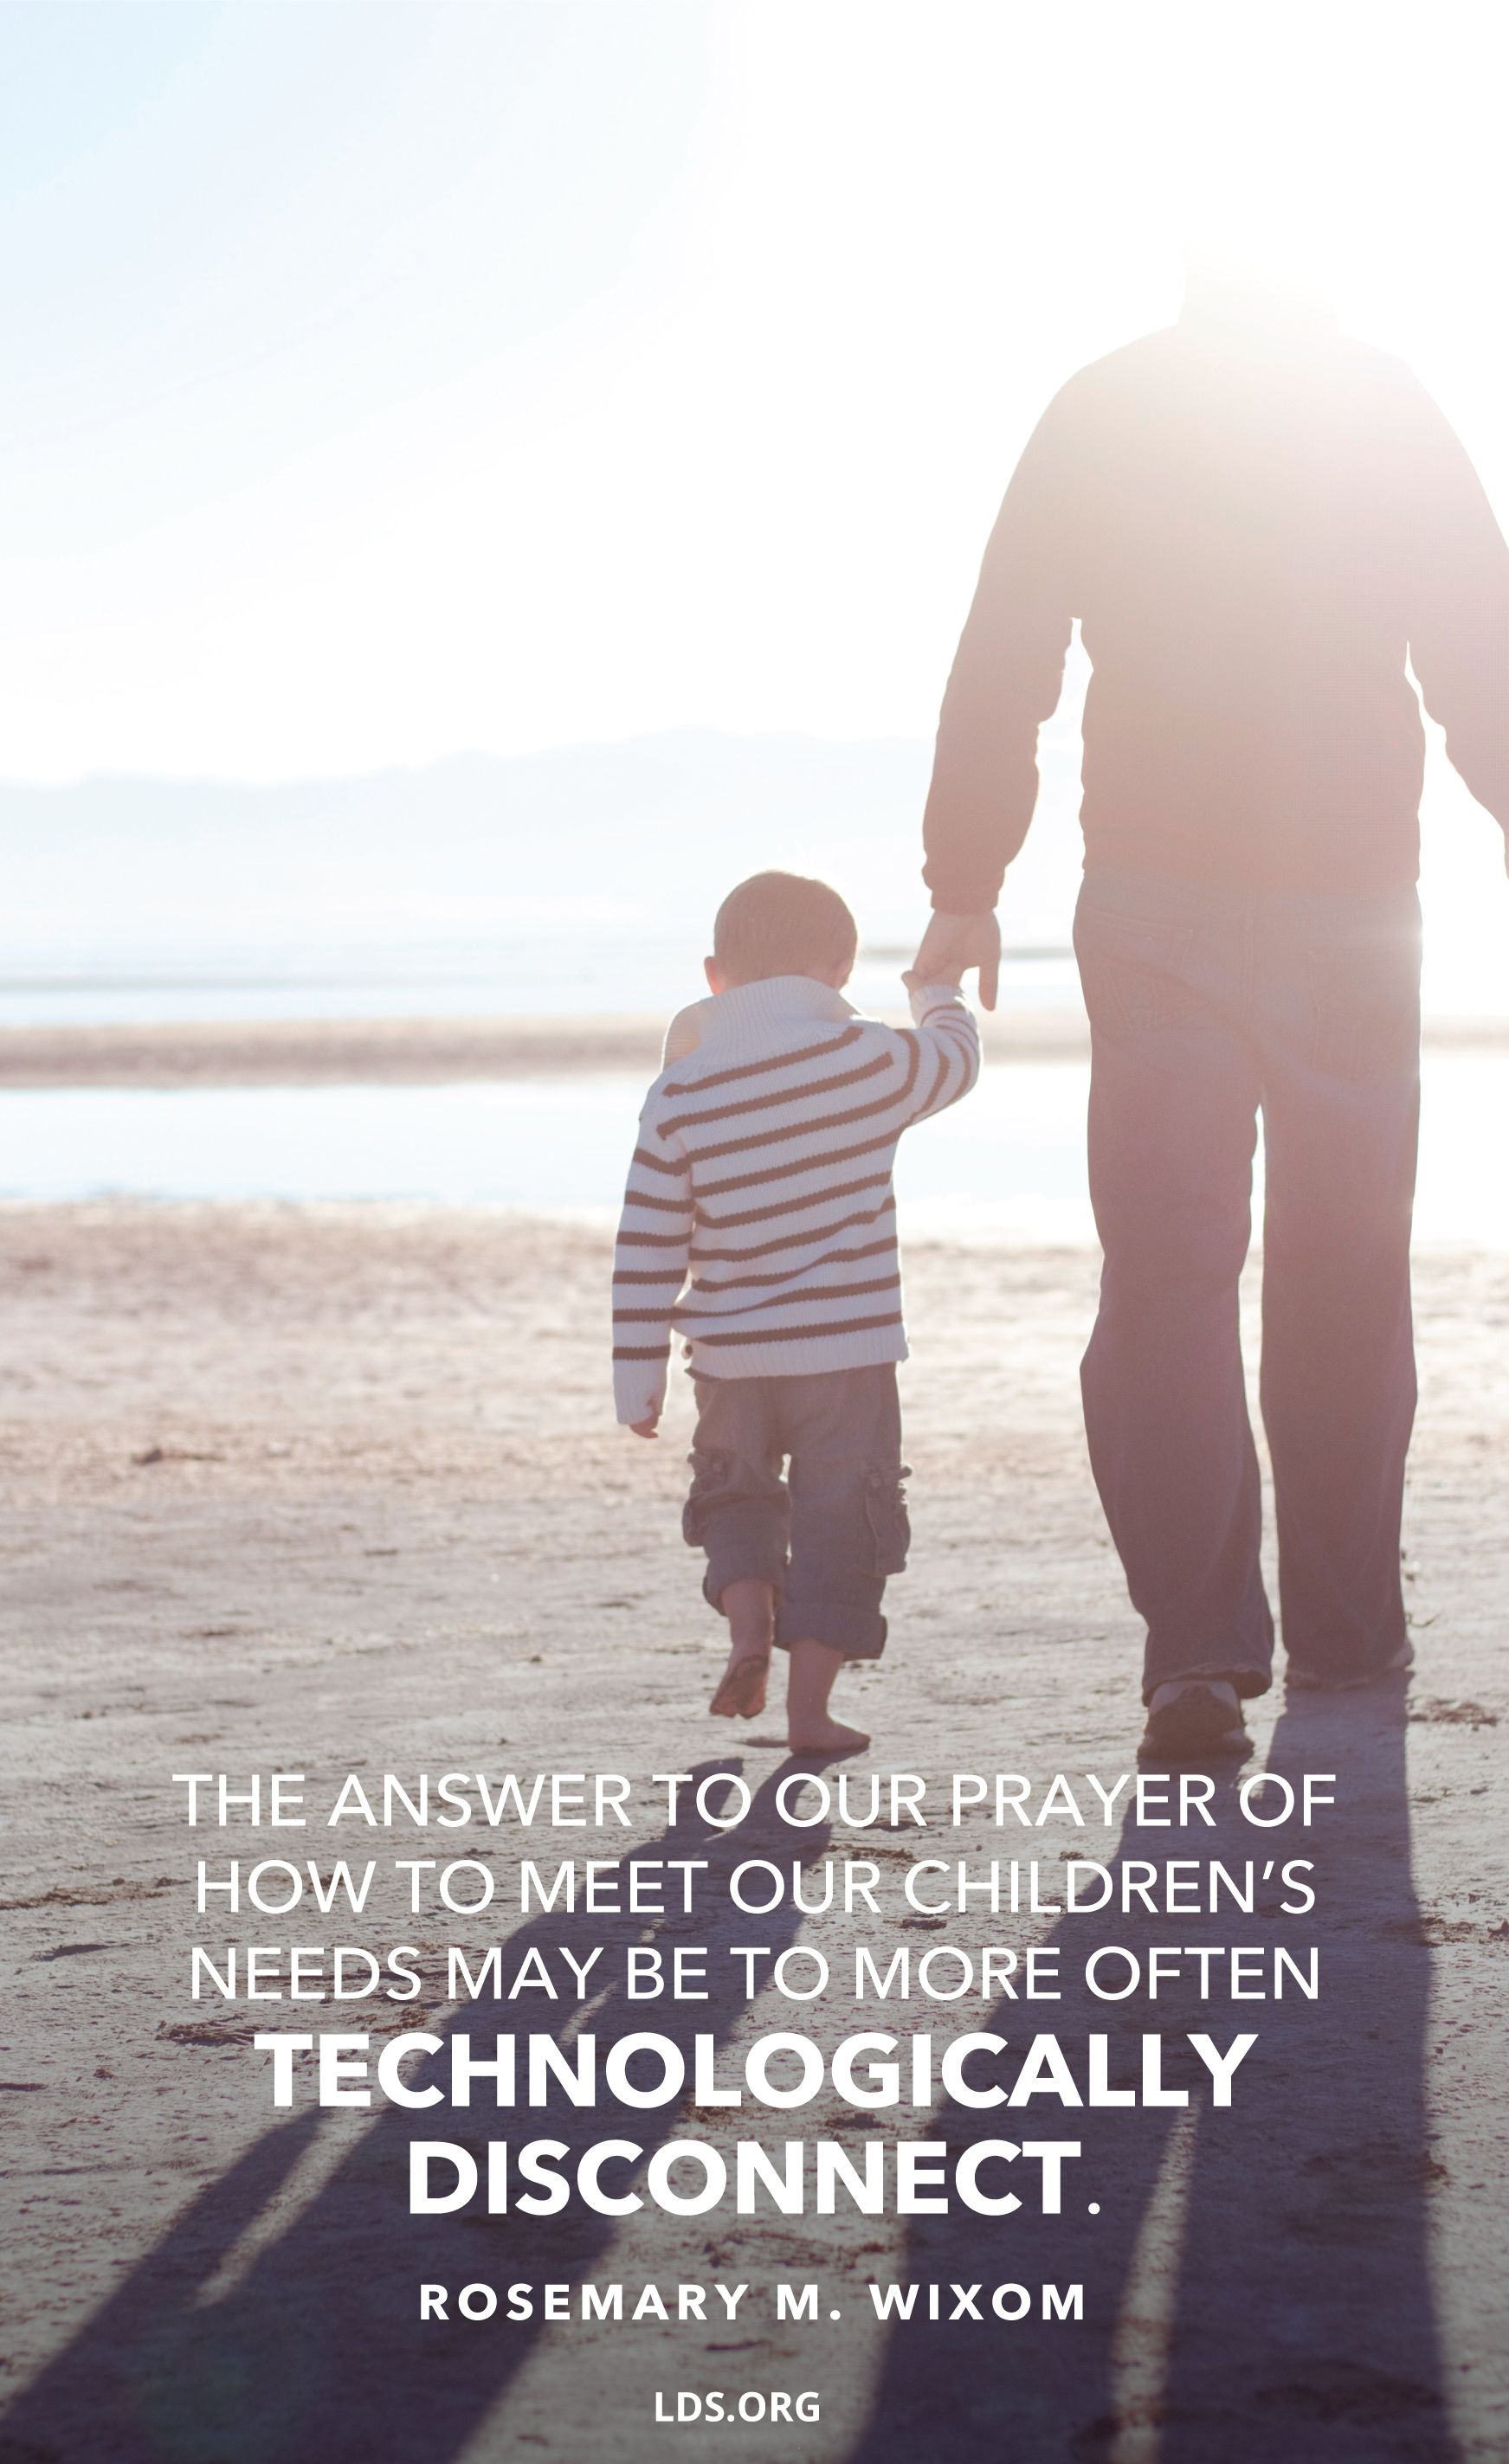 """""""The answer to our prayer of how to meet our children's needs may be to more often technologically disconnect.""""—Sister Rosemary M. Wixom, """"The Words We Speak"""""""